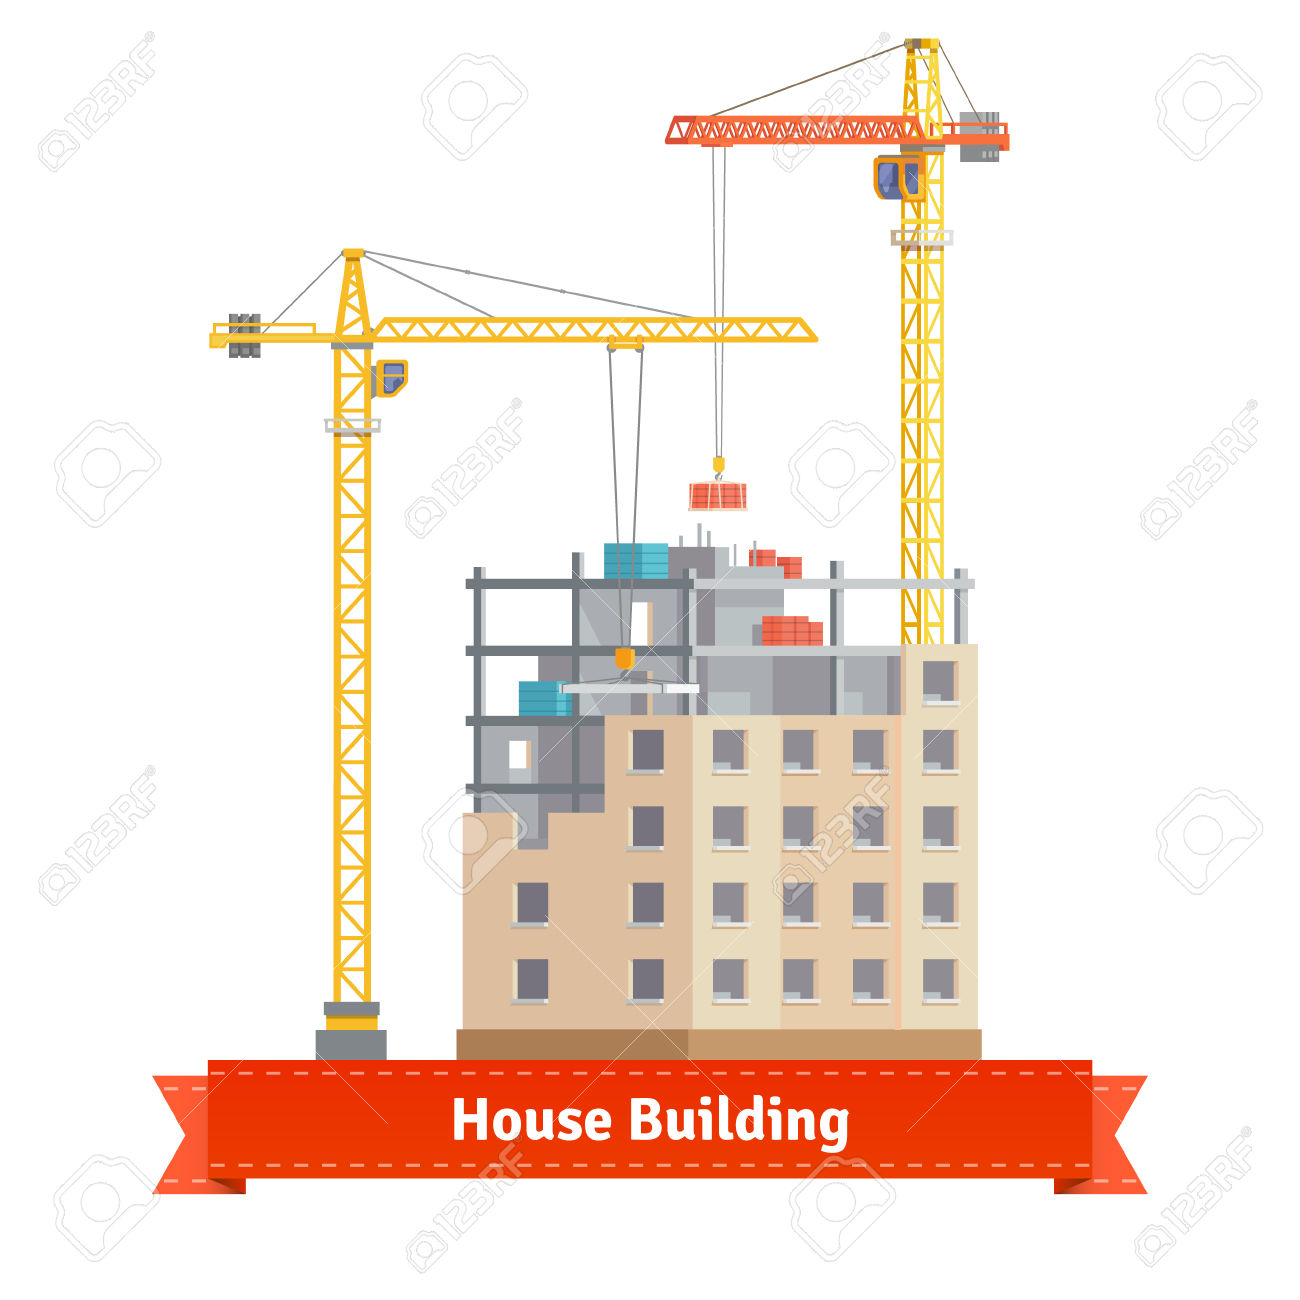 Construction Of Tenement House With Two Tower Cranes Lifting.